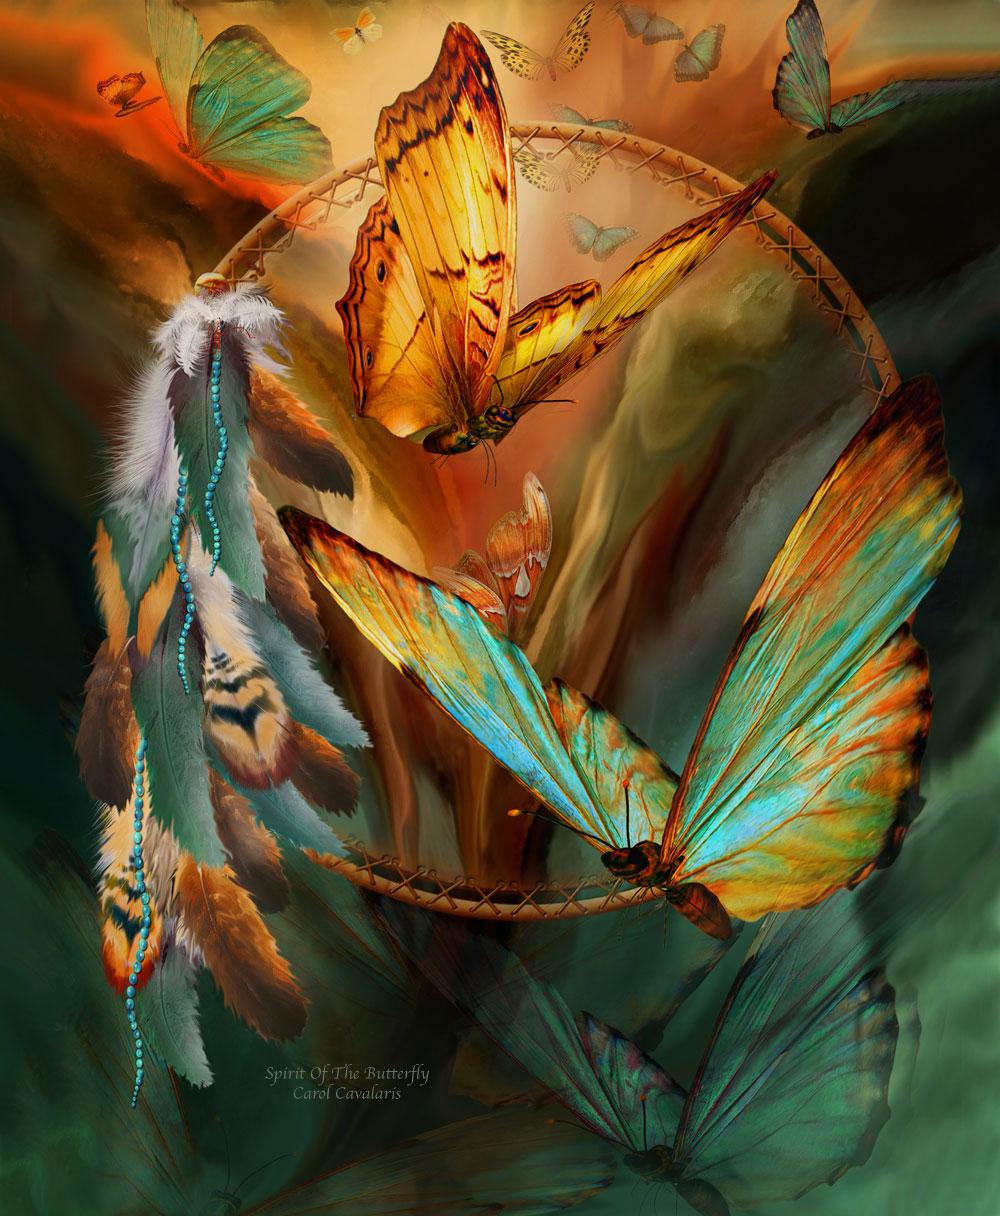 Spirit Of The Butterfly